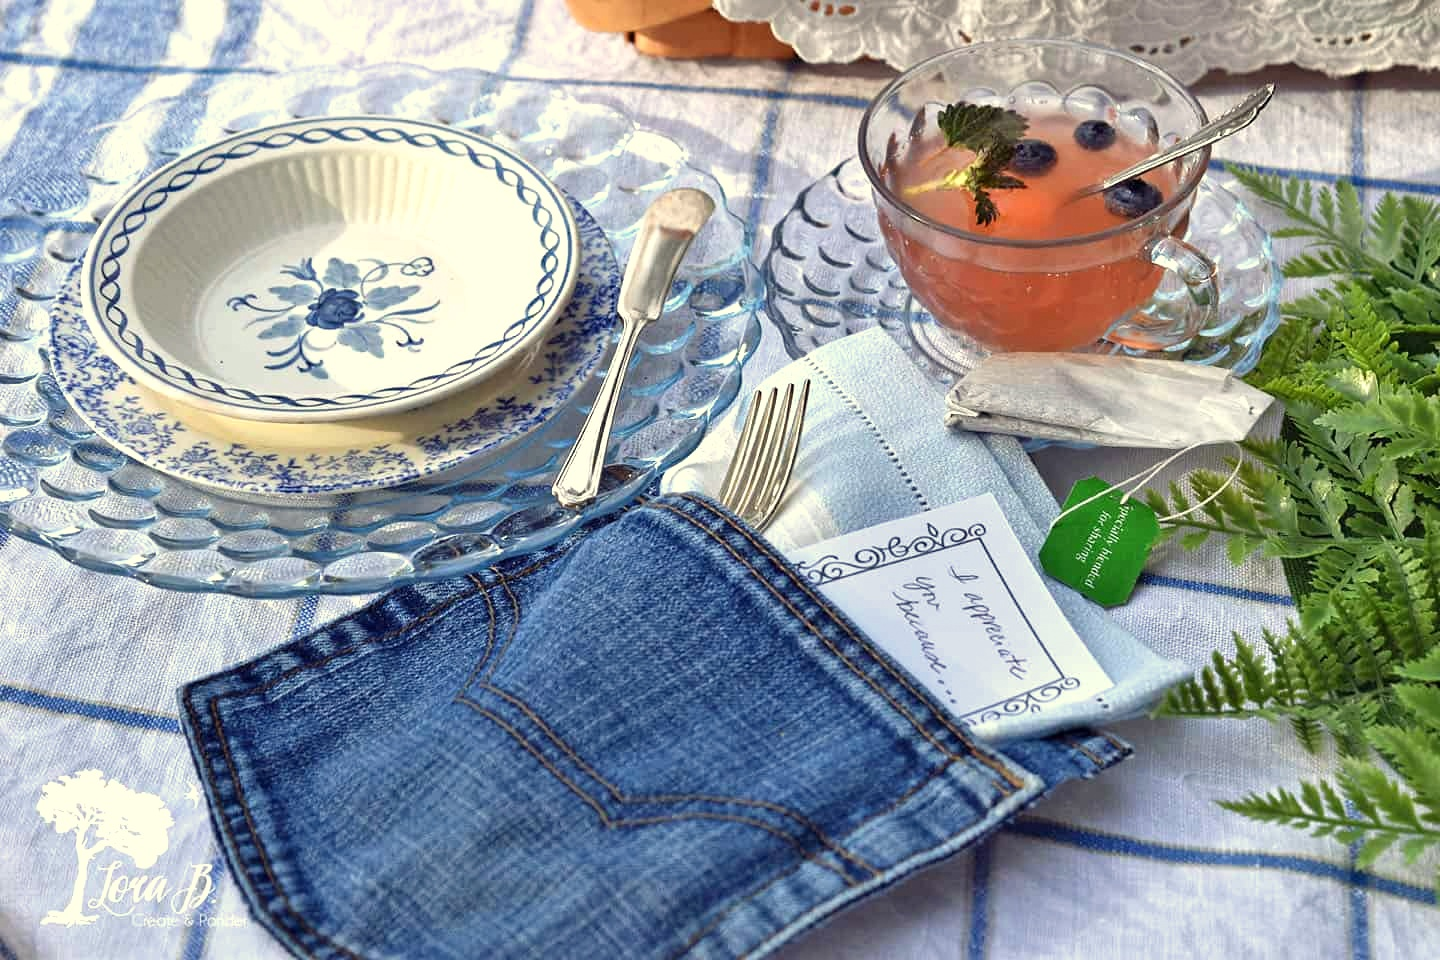 Denim pocket place setting decor by Lora B, featured on Funky Junk Interiors